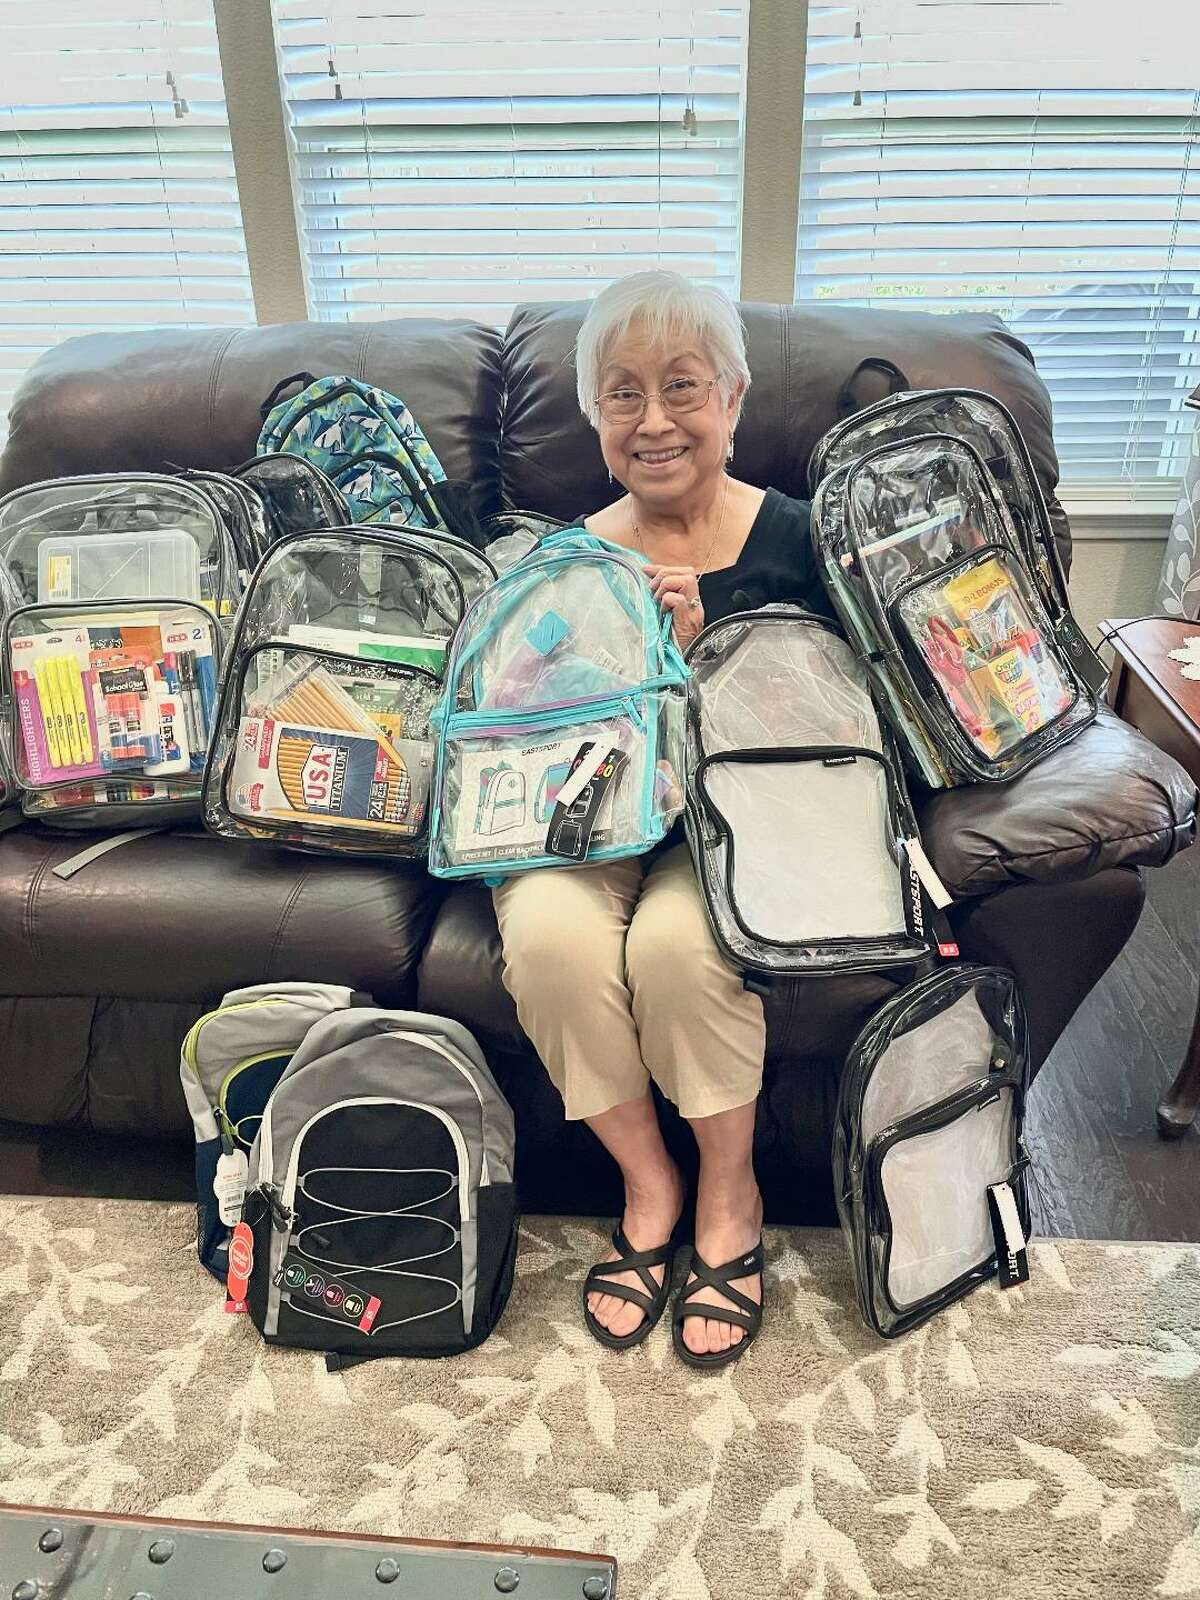 Loraine Gomez, service chair for Beta Sigma Pi's Theta Master chapter, organizes school supplies and backpacks collected for children at the Resource and Crisis Center of Galveston County shelter. For Theta Master membership information, contact Judy Hotman, 713-724-3154.